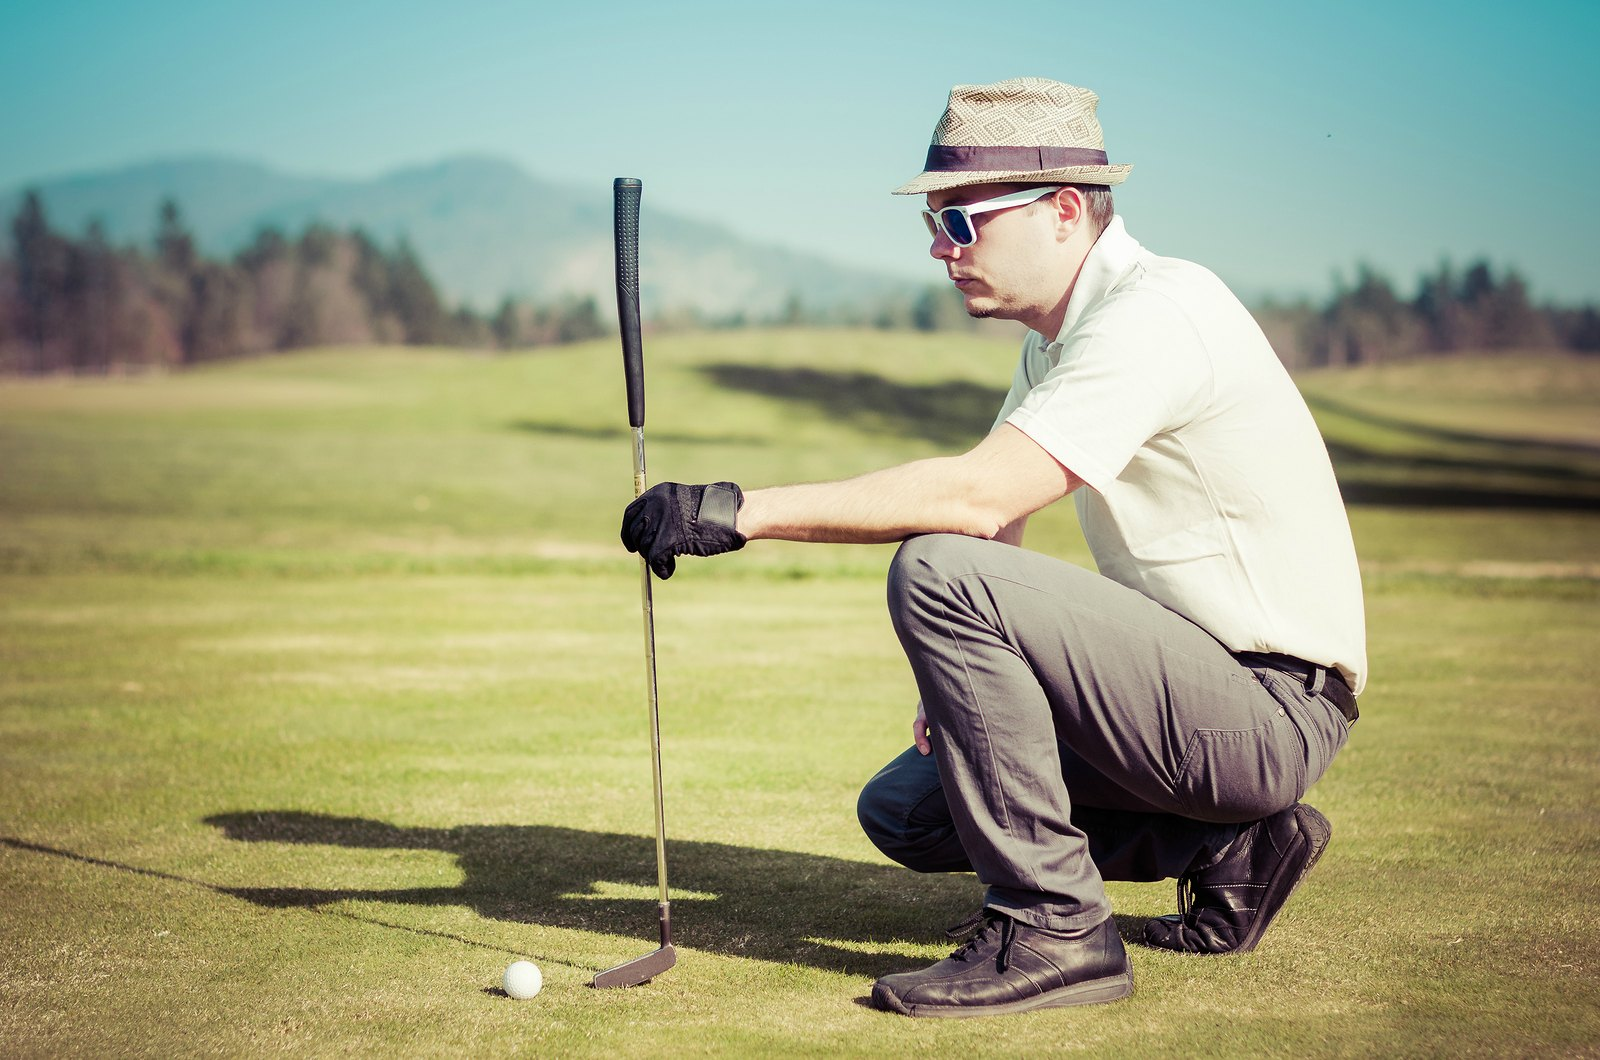 Golf is a great alternative to gym workouts - 18 holes can burn over 800 calories!